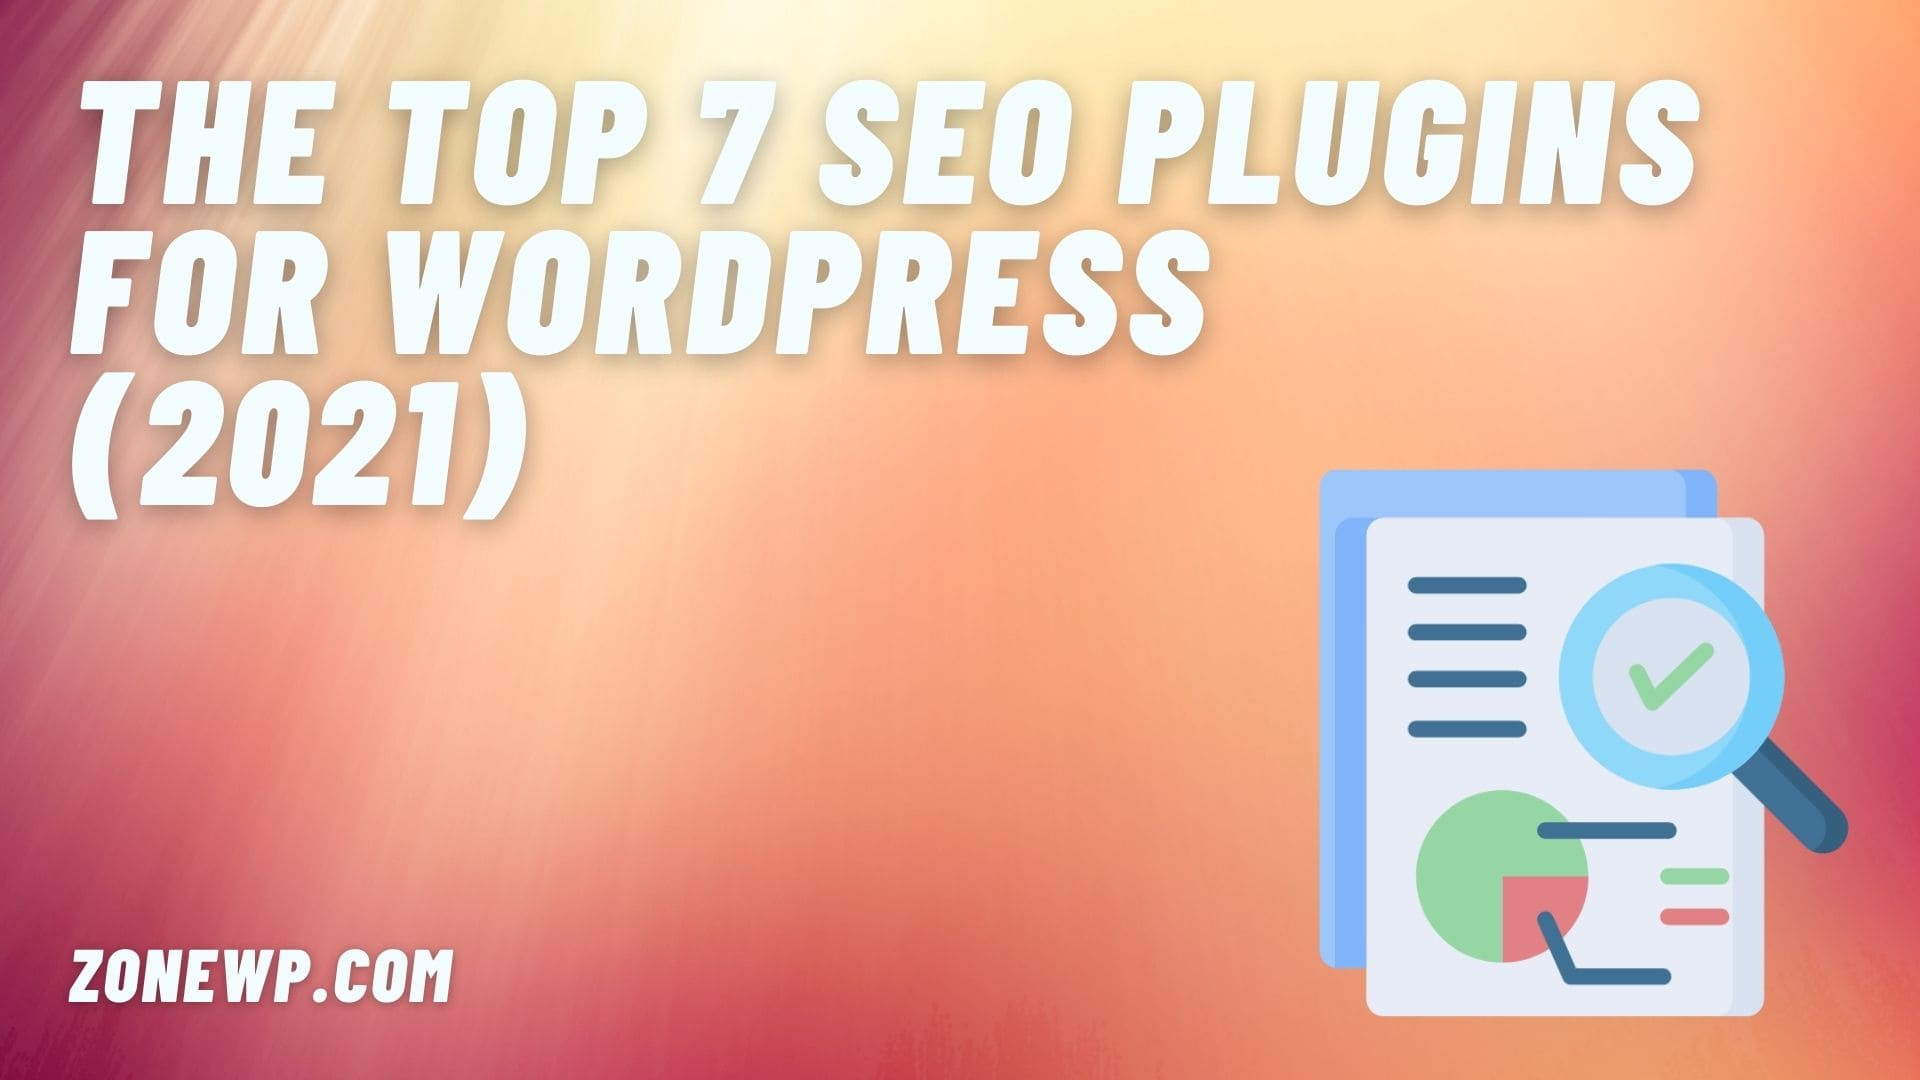 The Top 7 SEO Plugins for WordPress (2021)